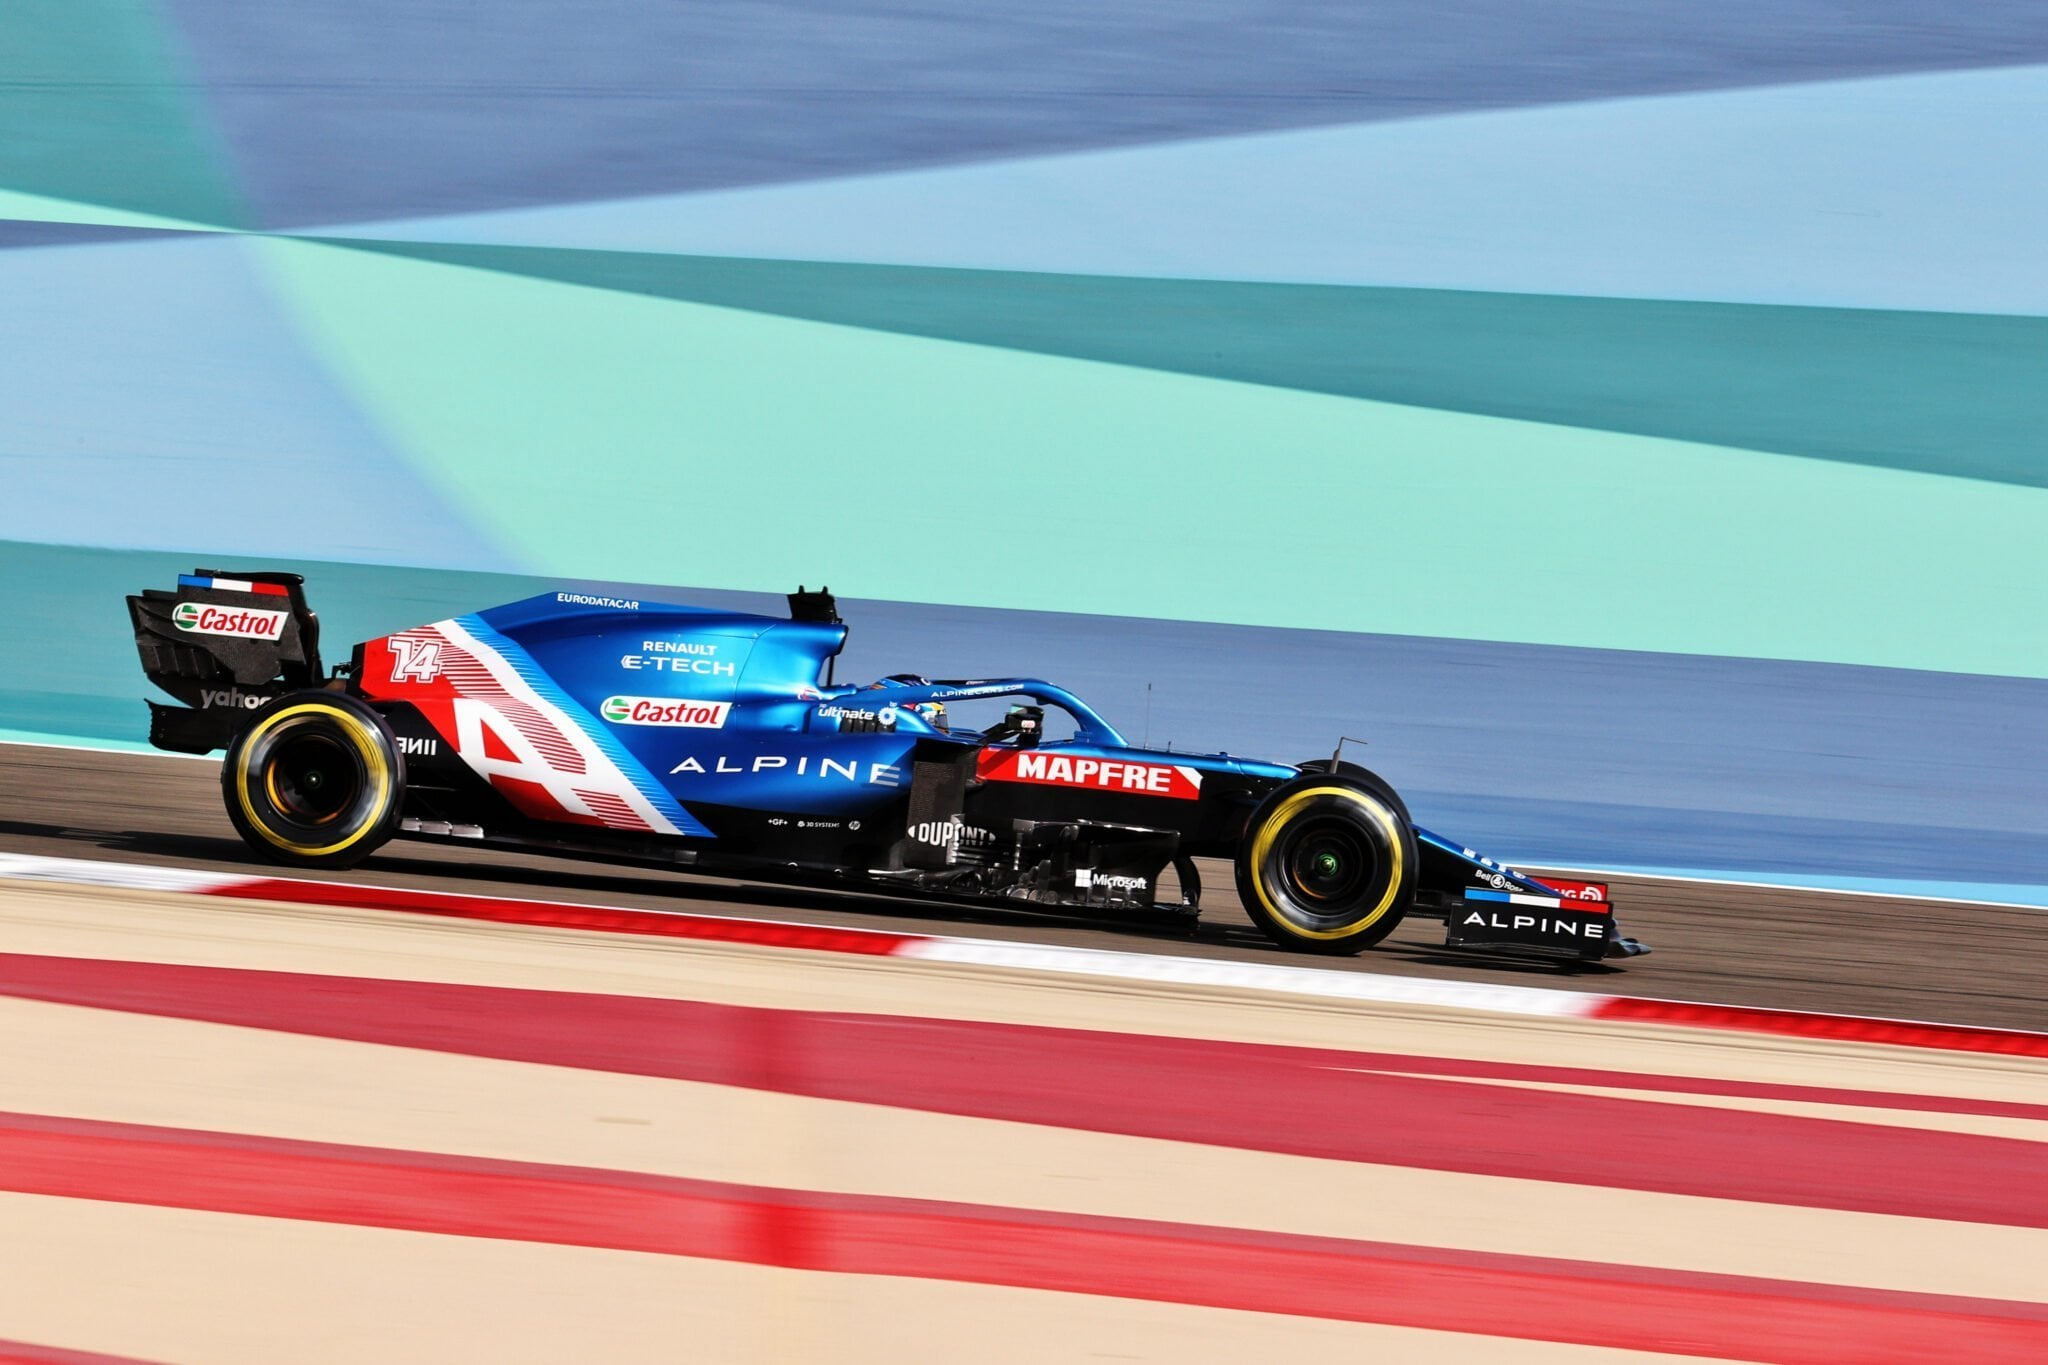 Alpine F1 Team Alonso Ocon A521 Bahrein